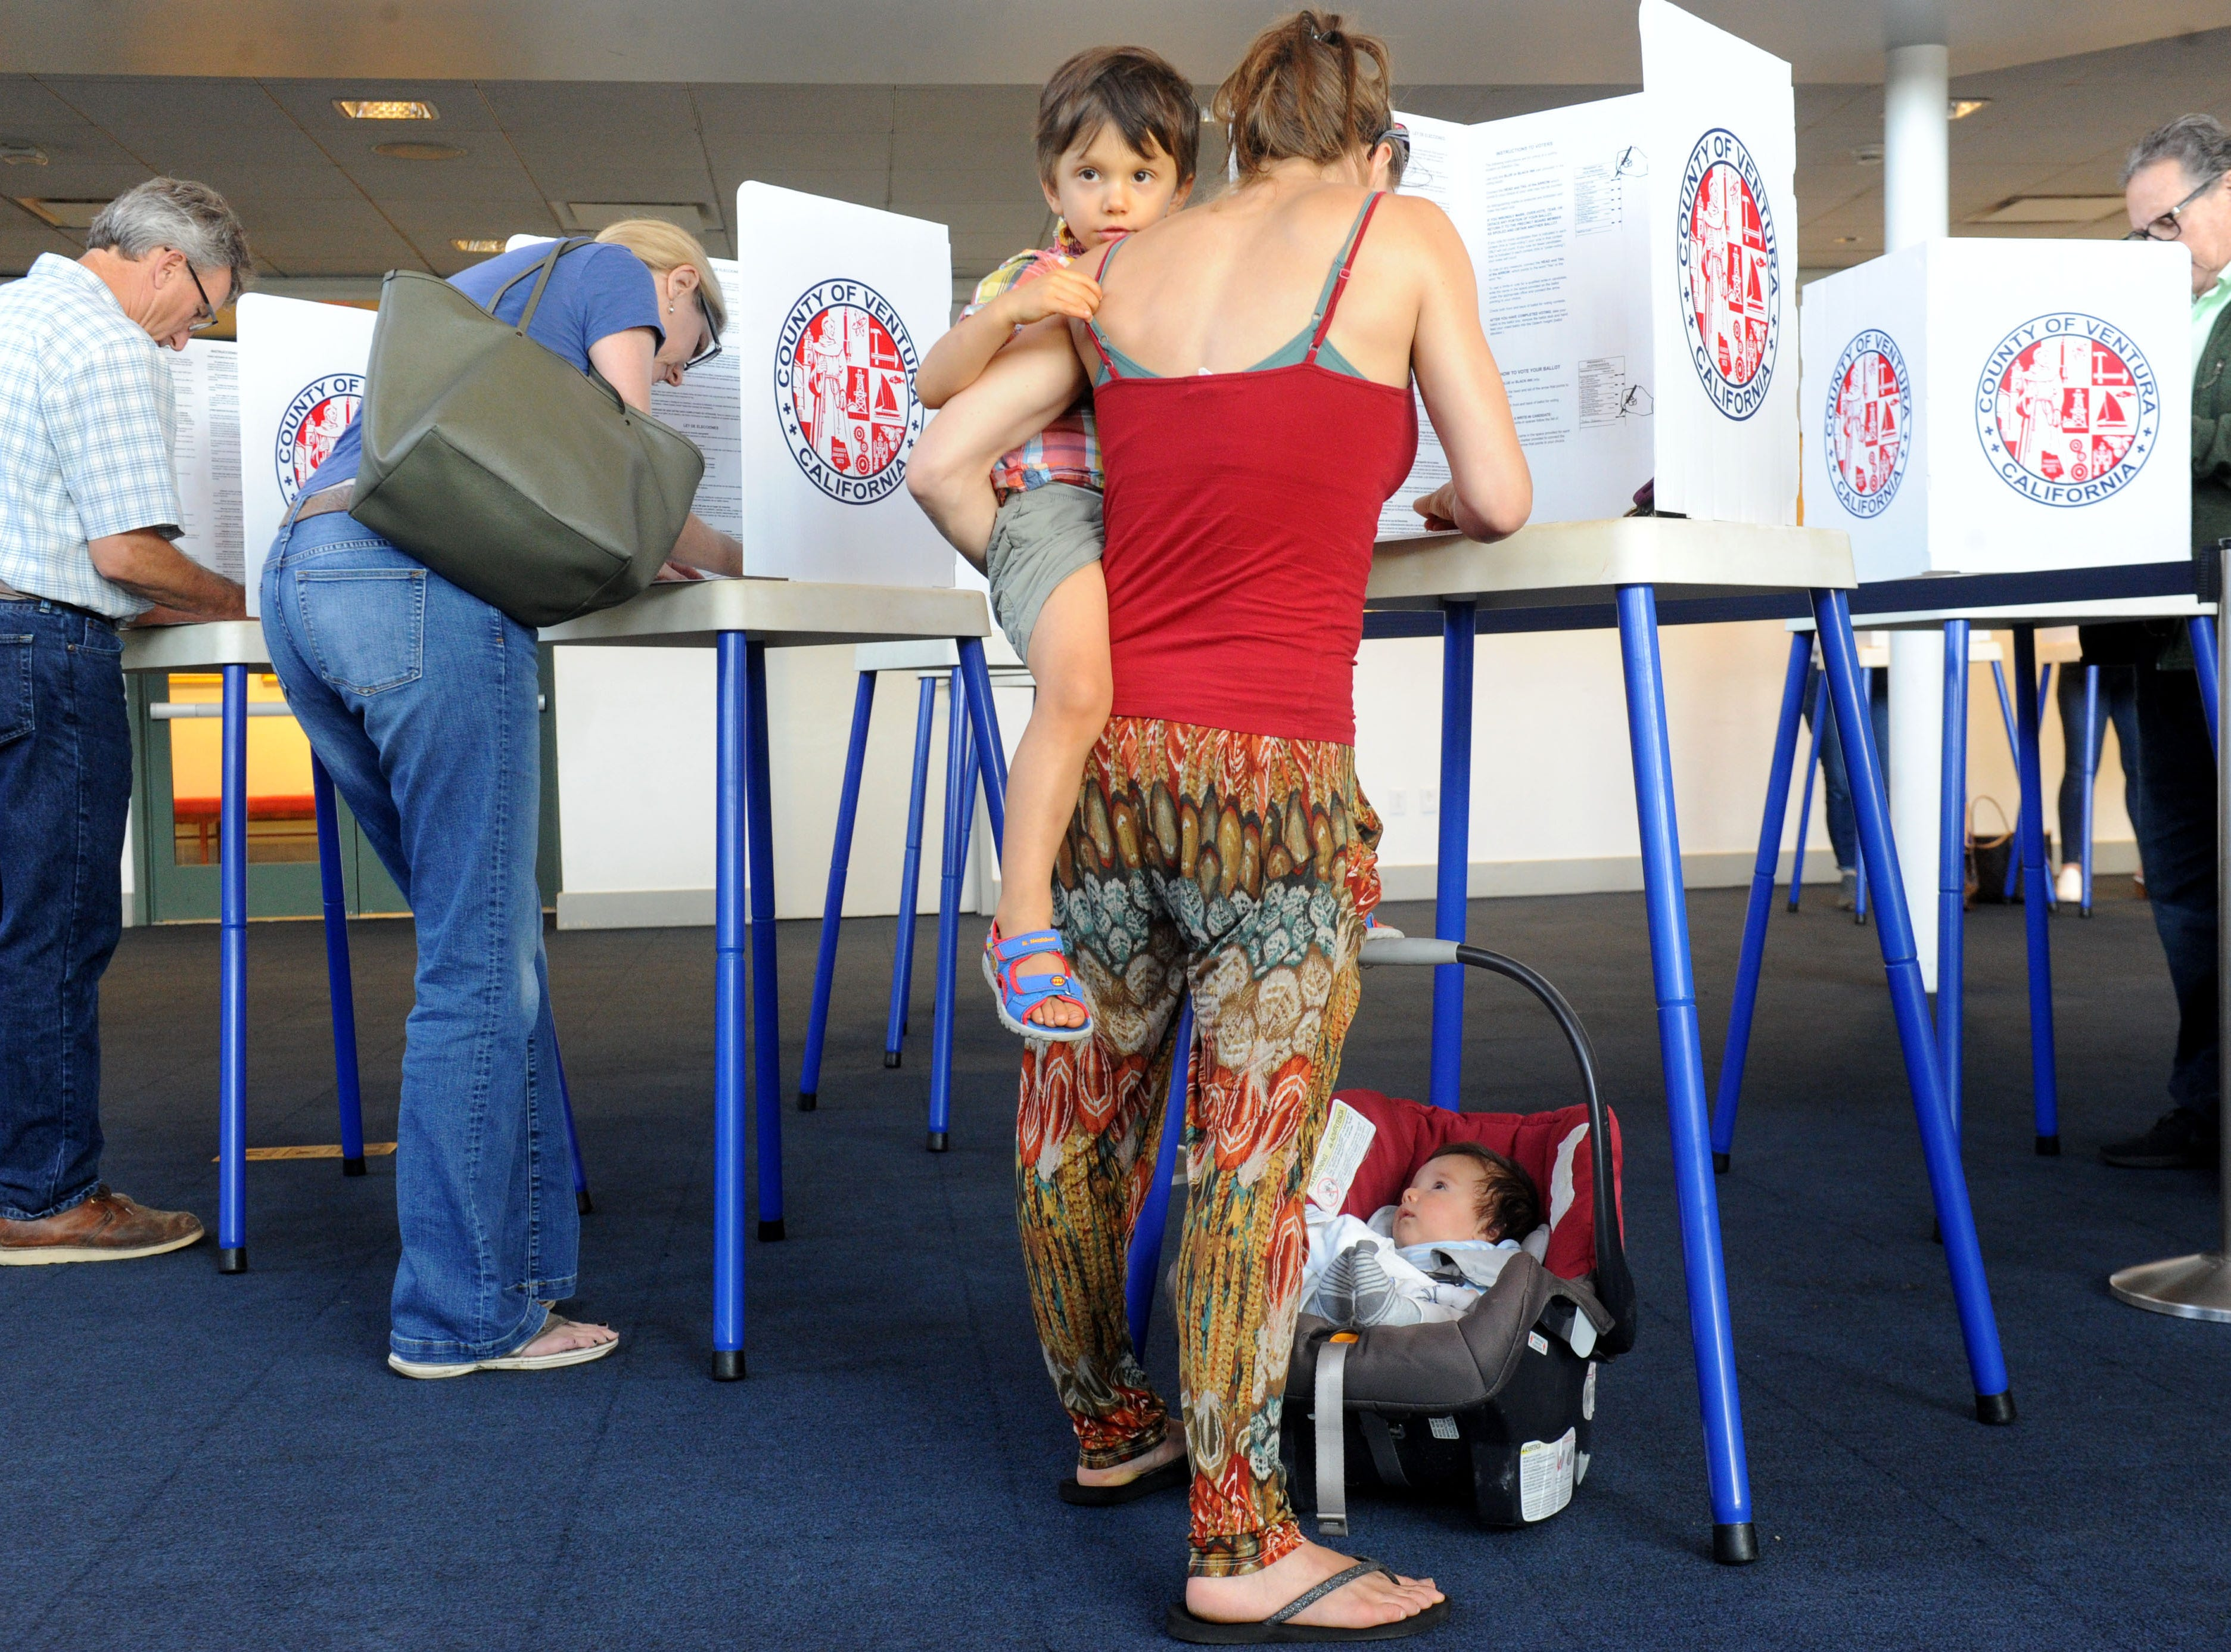 Ana Alvarez votes with her children Max Alvarez, 3, and Oliver Alvarez, 2 months, at the Ronald Reagan Presidential Library & Museum in Simi Valley. The library had a steady stream of voters Tuesday.